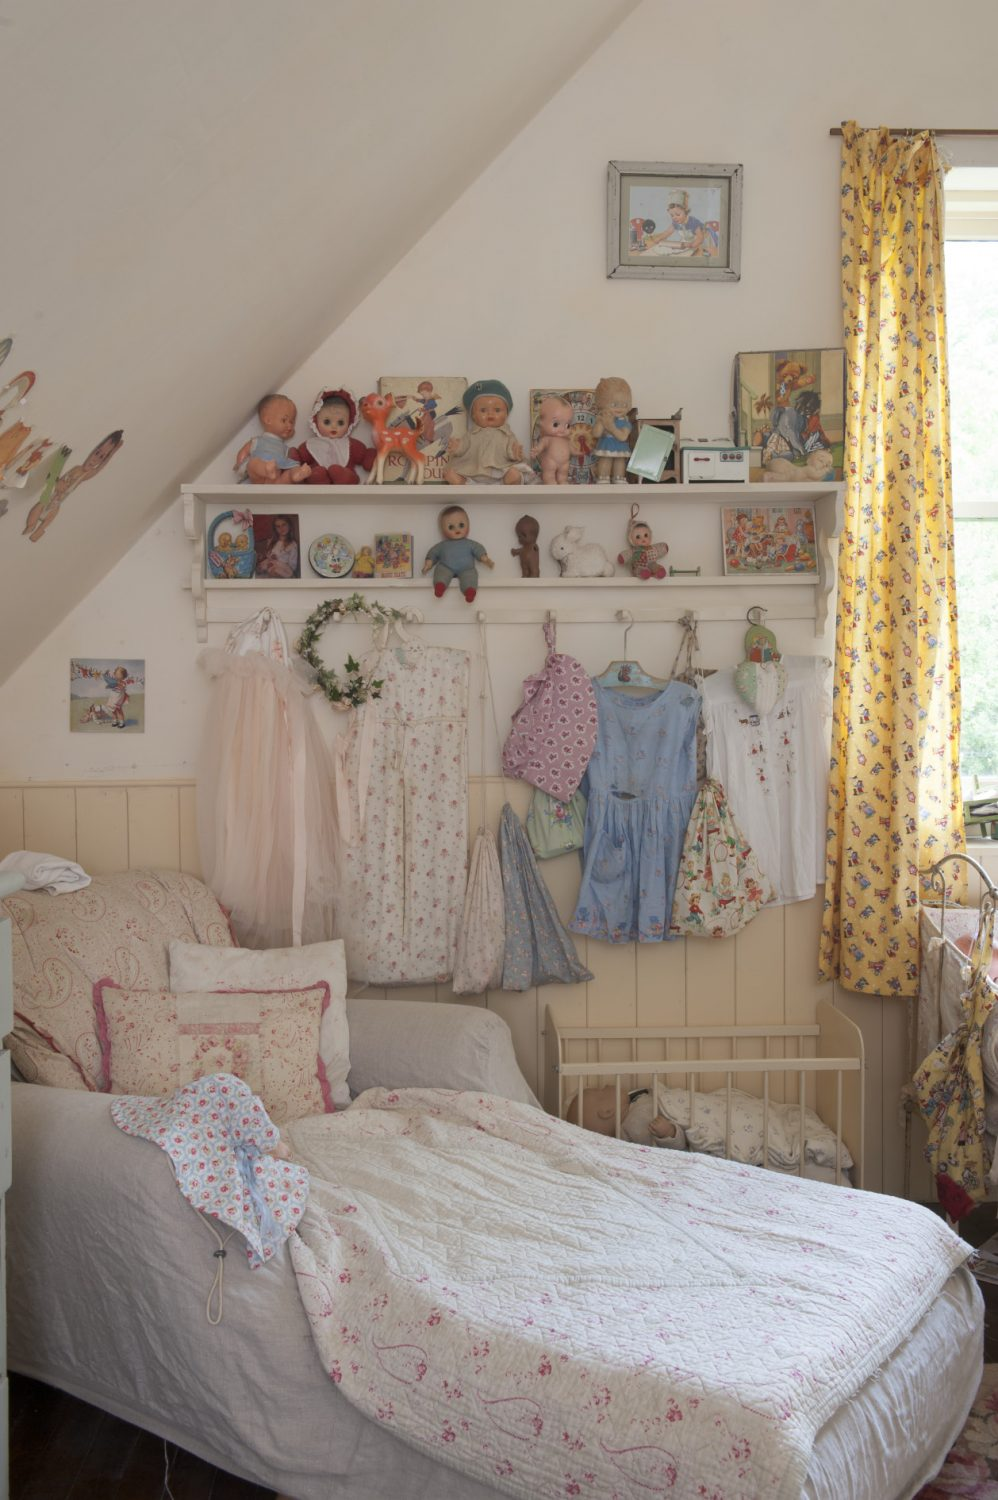 Bibby's room is a delightful mix of buttermilk yellow and shell pink